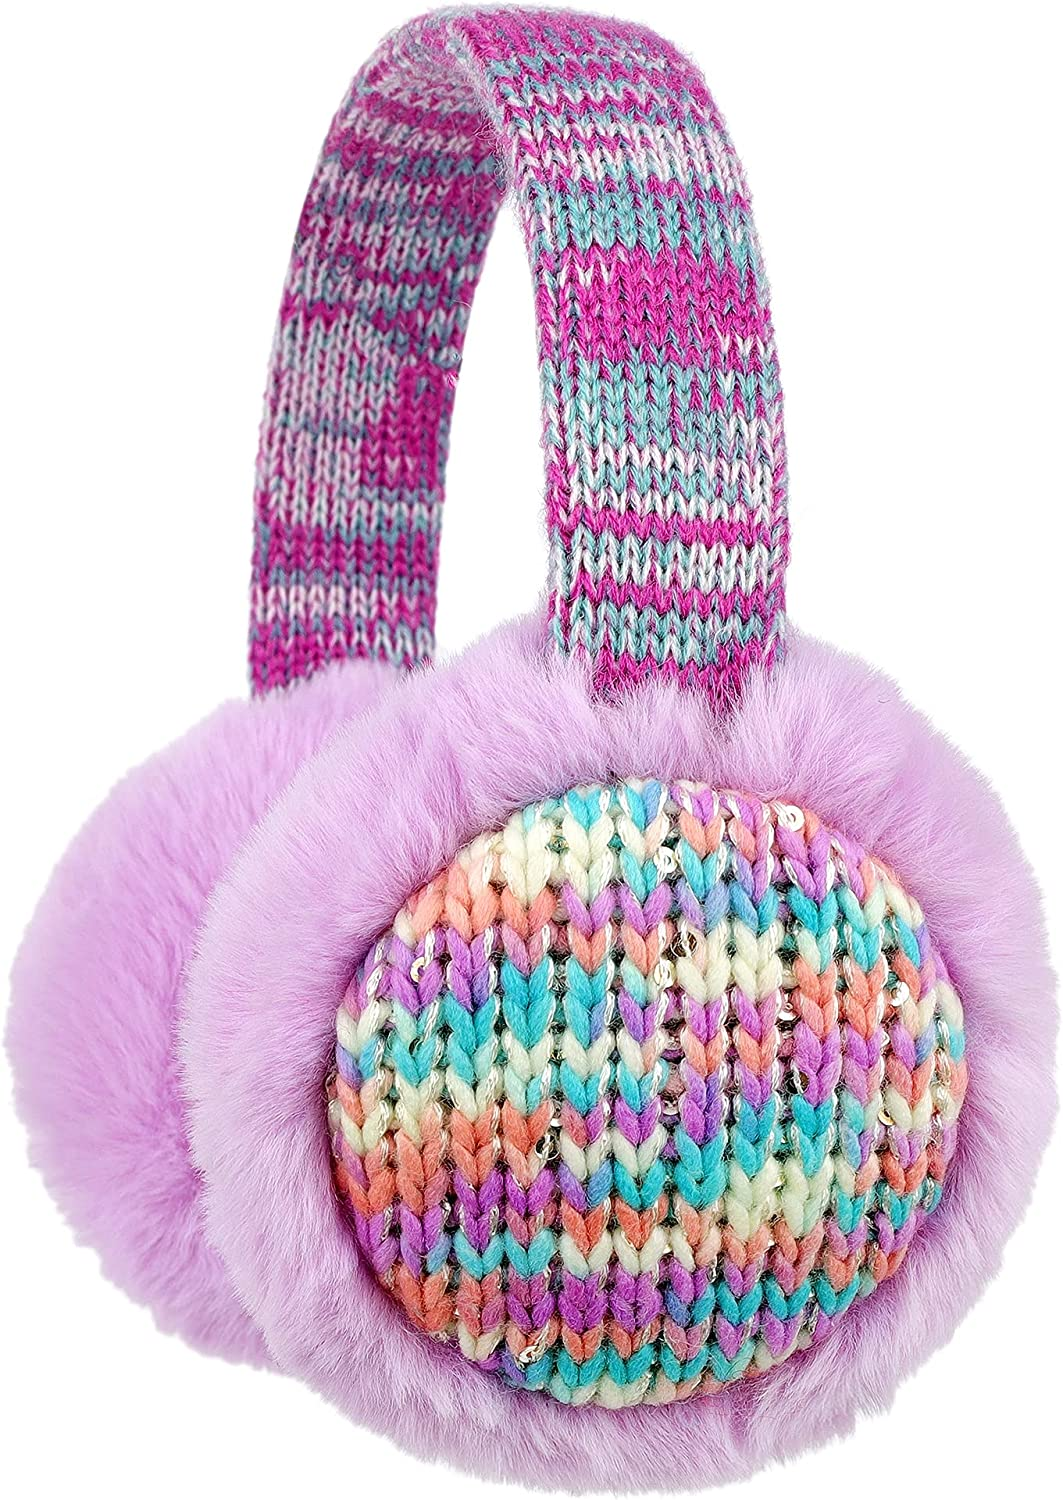 Flammi Kids Knit Earmuffs Al sold out. Winter Complete Free Shipping Outdoor Furry B Ear for Warmers